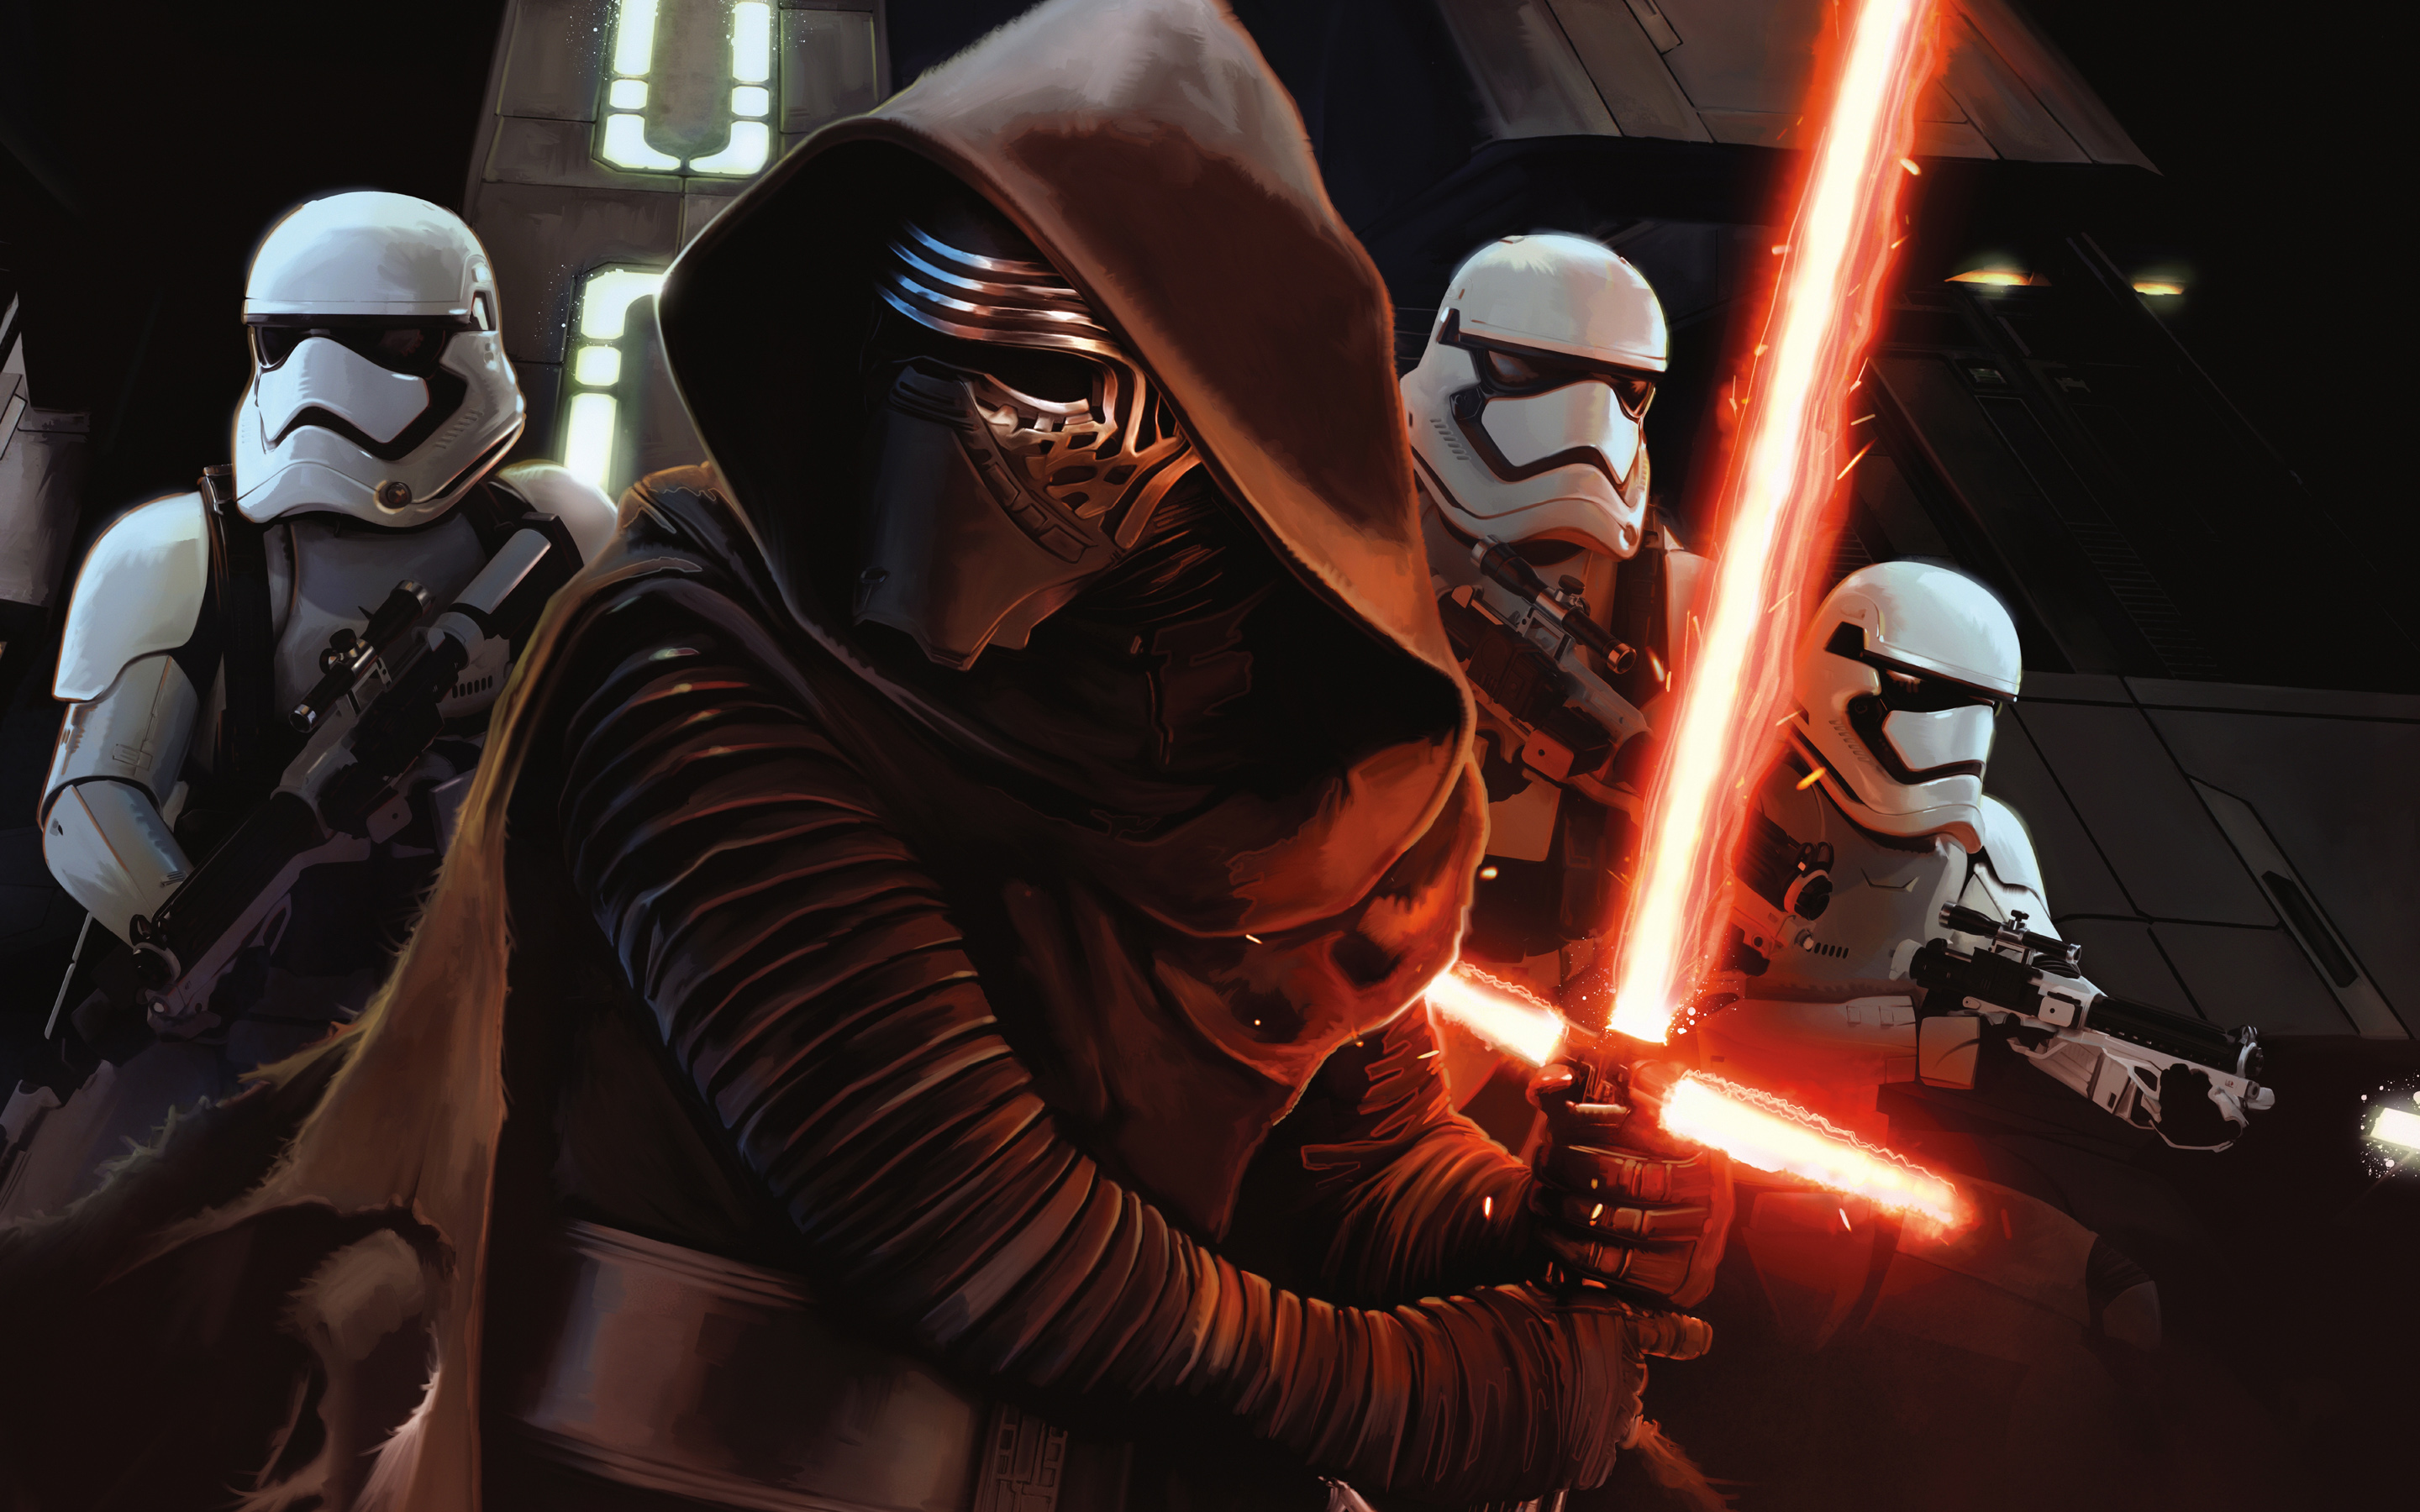 Star Wars Episode VII The Force Awakens Wallpapers | HD Wallpapers